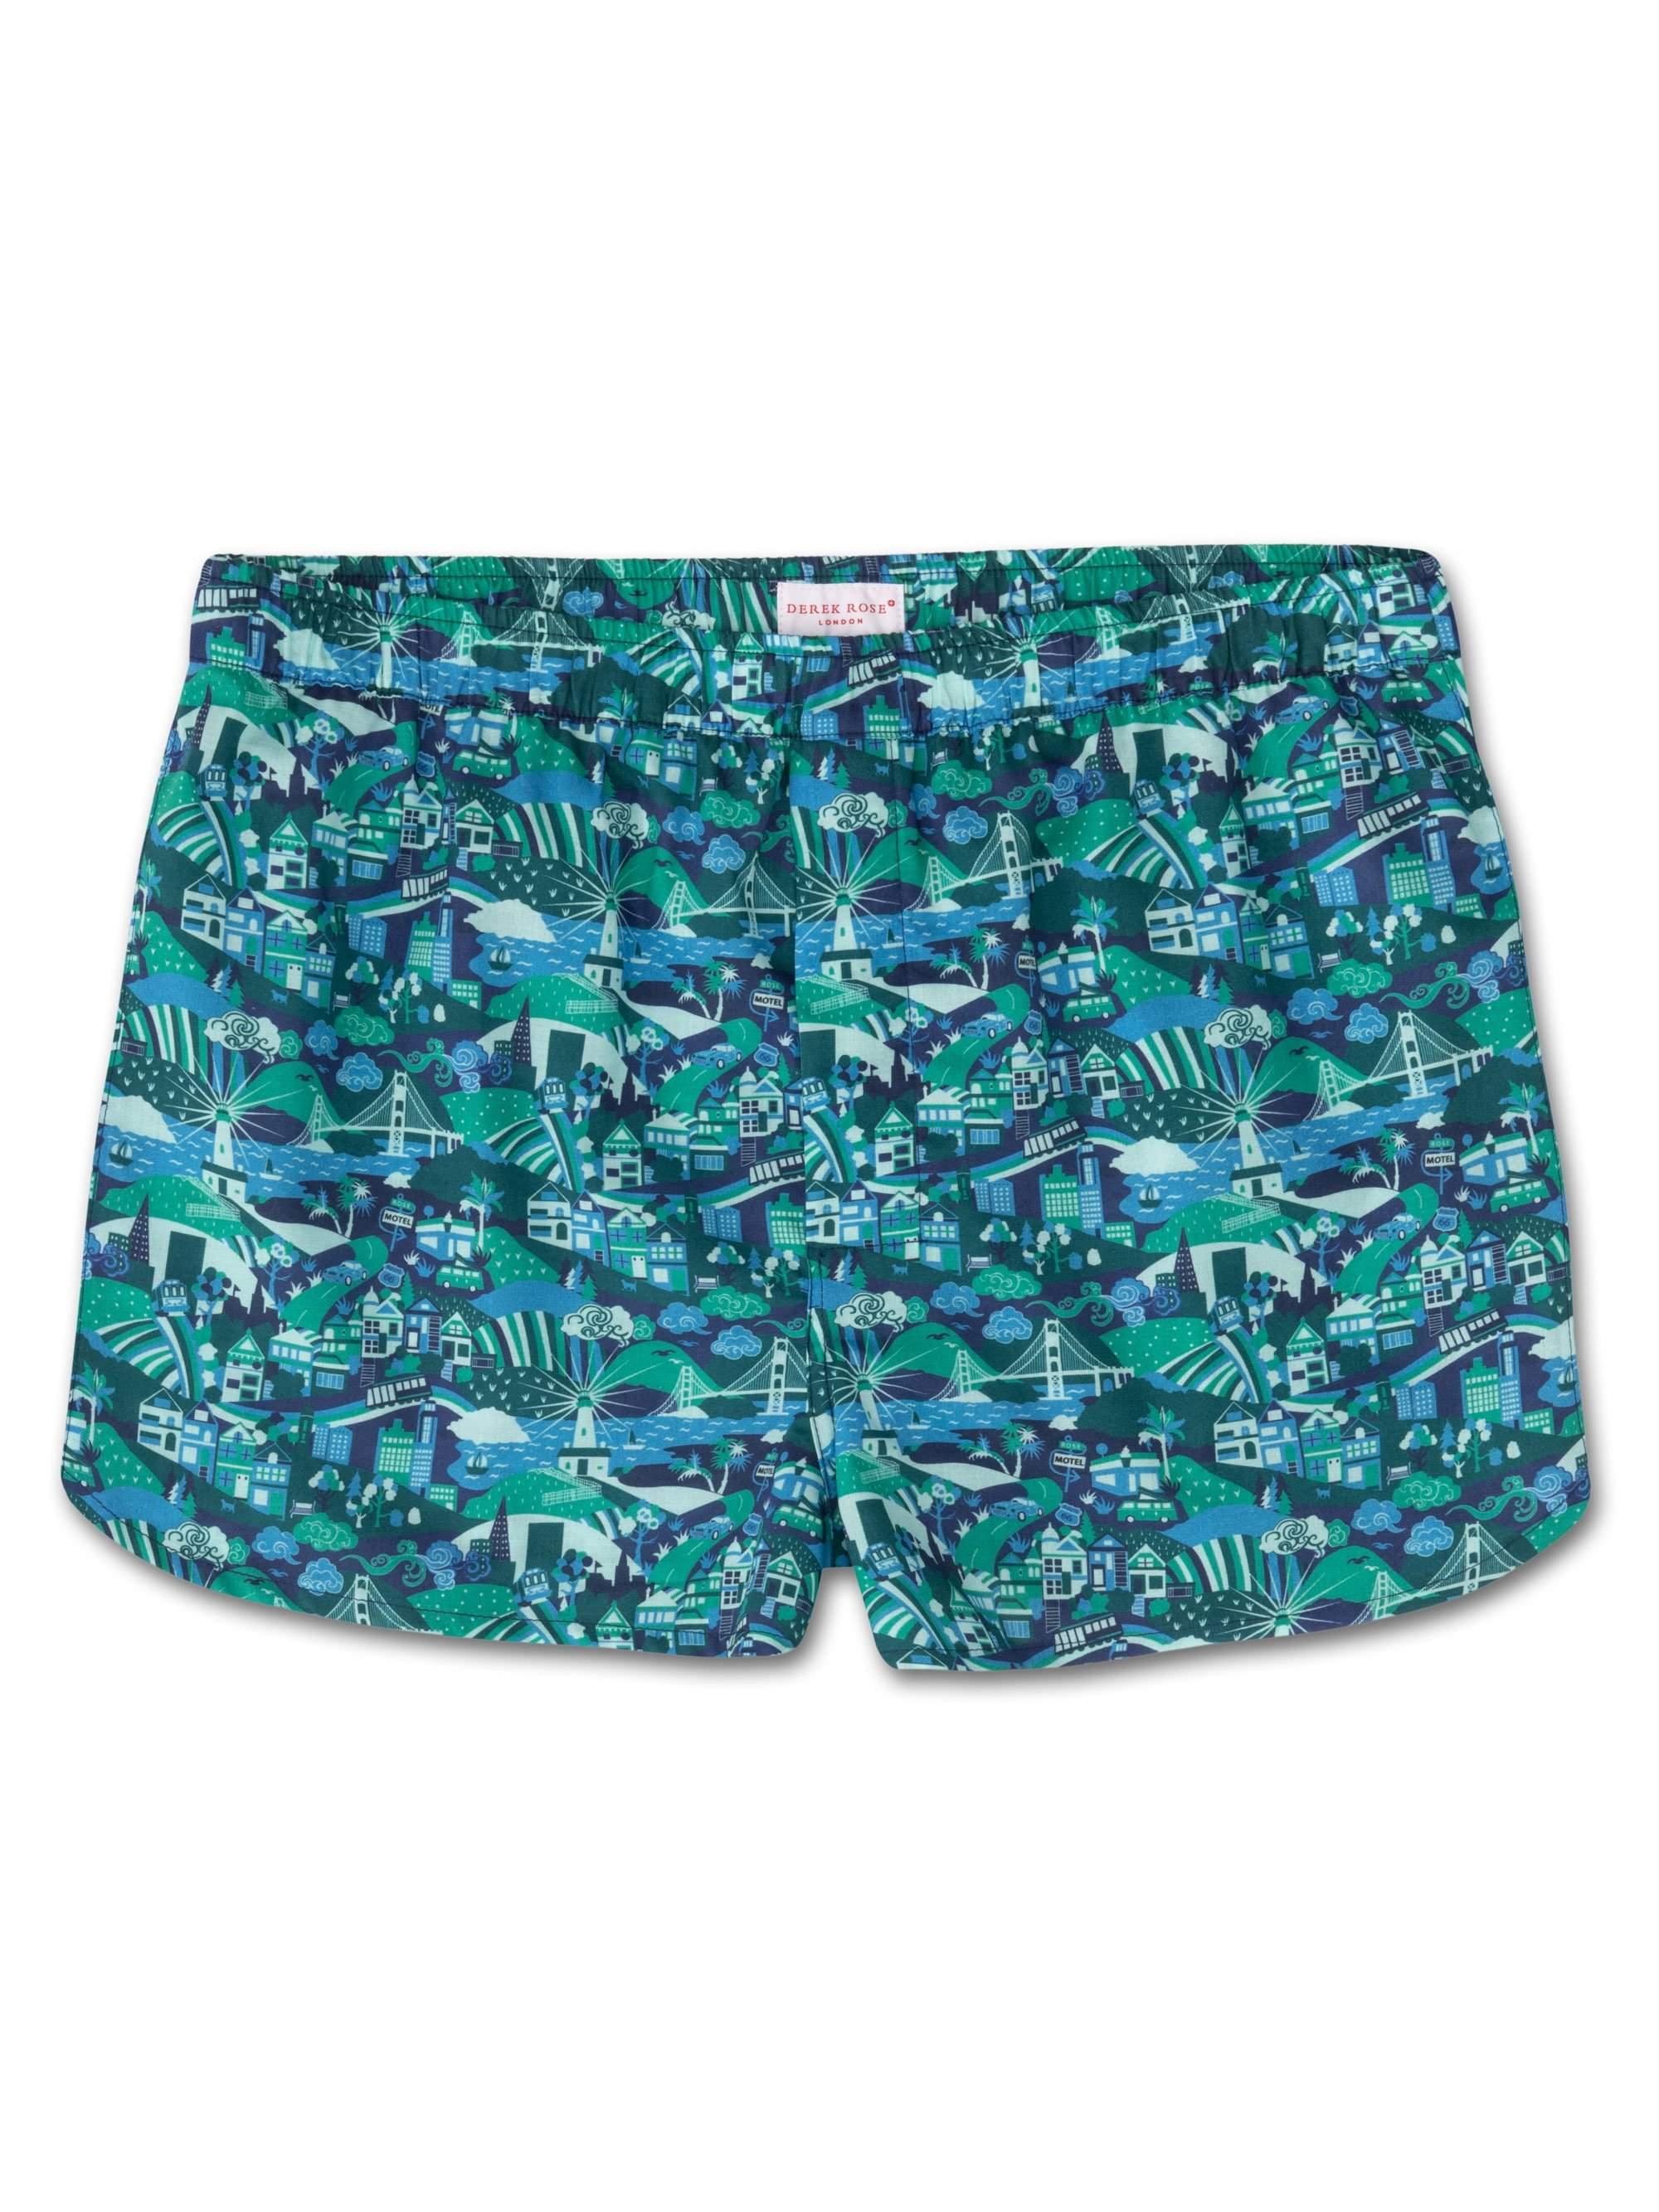 Men's Modern Fit Boxer Shorts Ledbury 19 Cotton Batiste Green